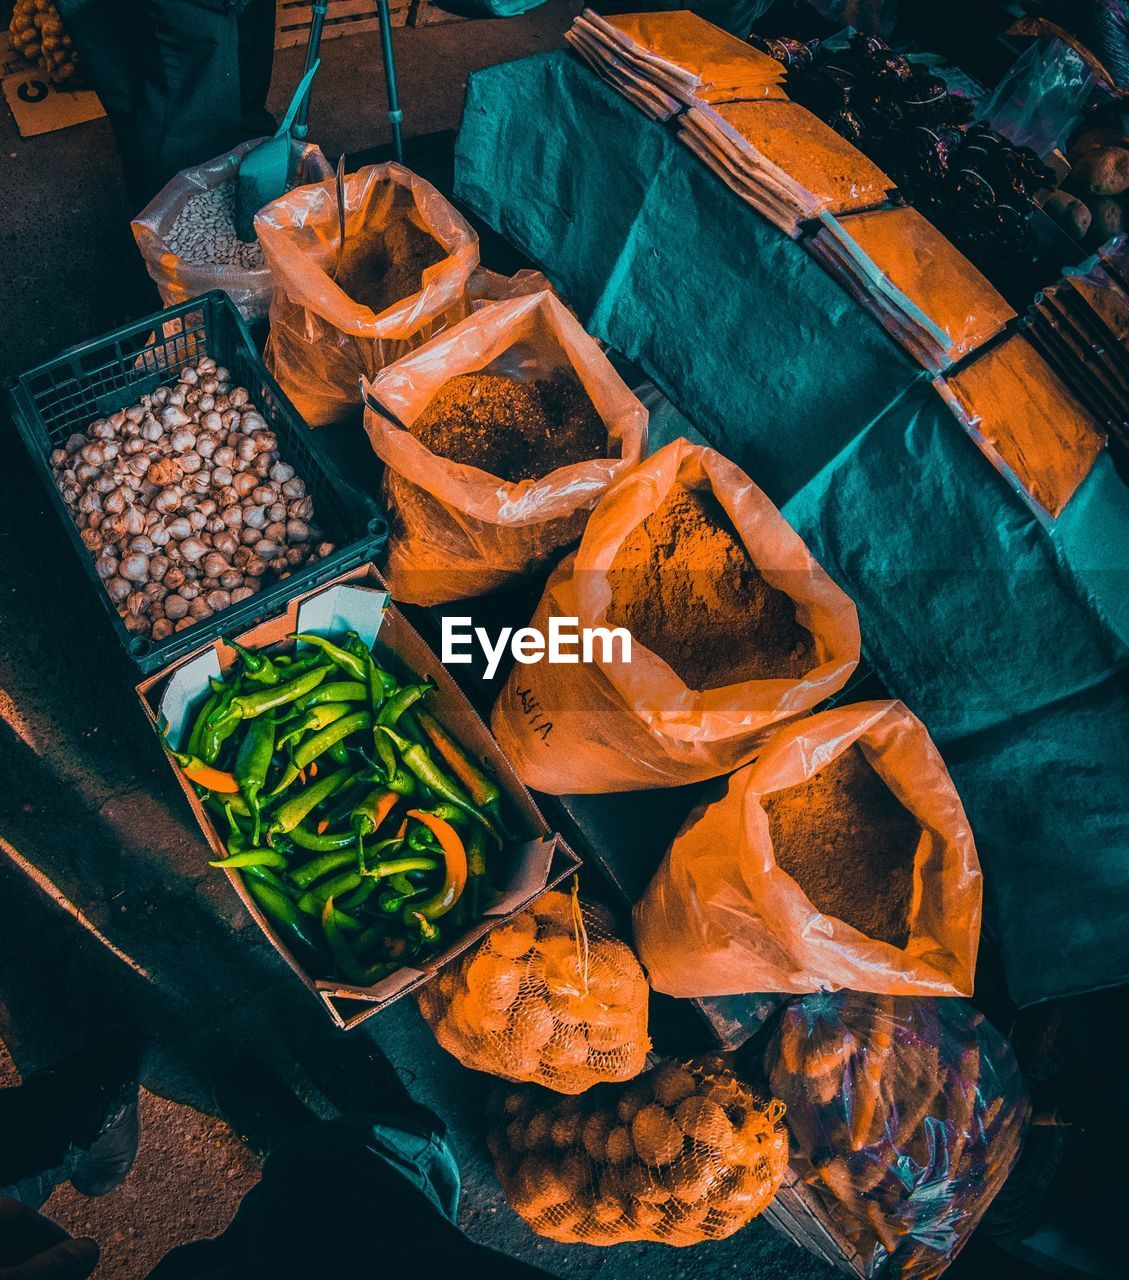 food, high angle view, food and drink, freshness, no people, vegetable, choice, still life, indoors, healthy eating, variation, for sale, container, wellbeing, business, market, close-up, arrangement, day, spice, variety